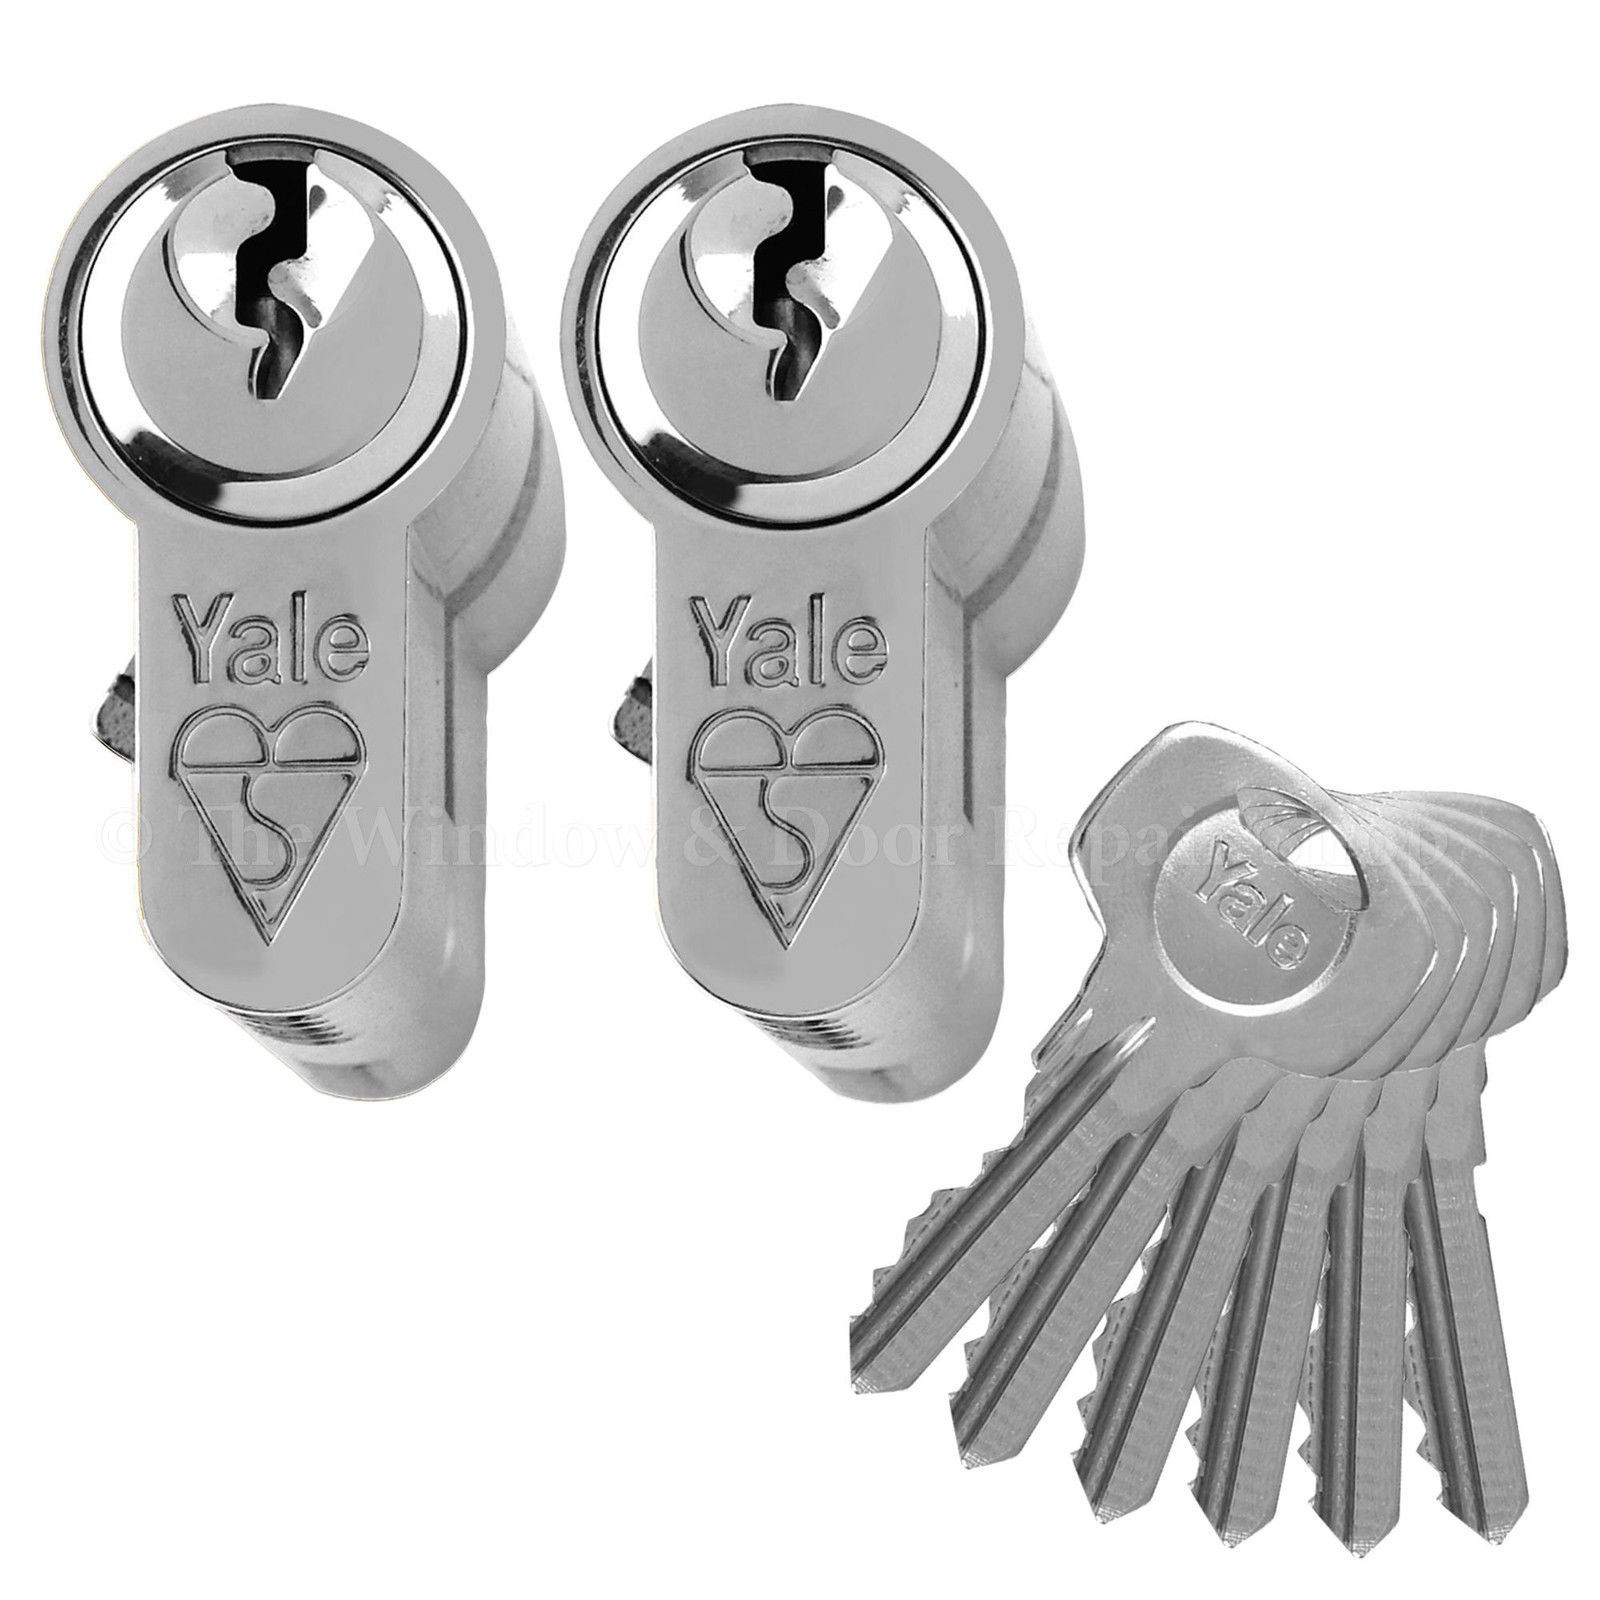 Yale Keyed Alike Anti Bump Euro Cylinder Upvc Door Lock